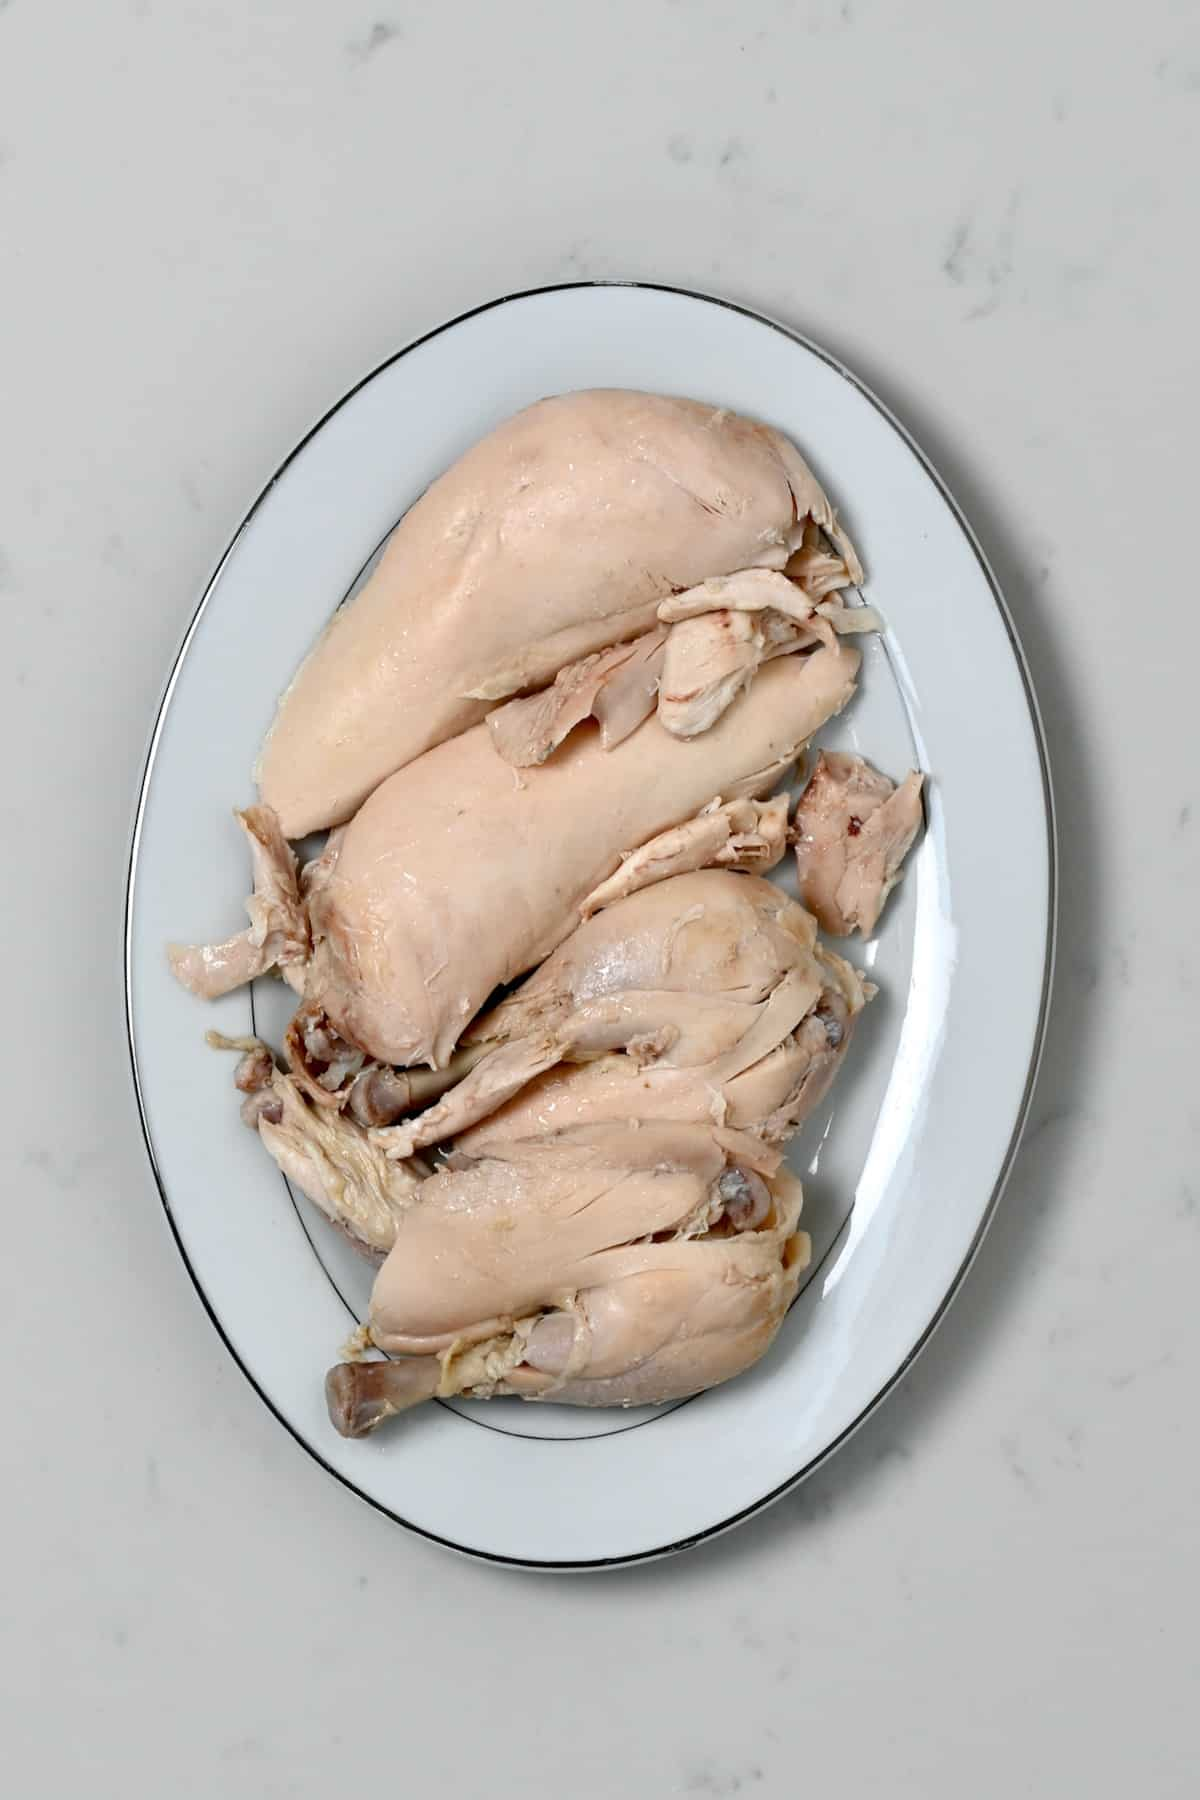 Boiled chicken parts on a plate